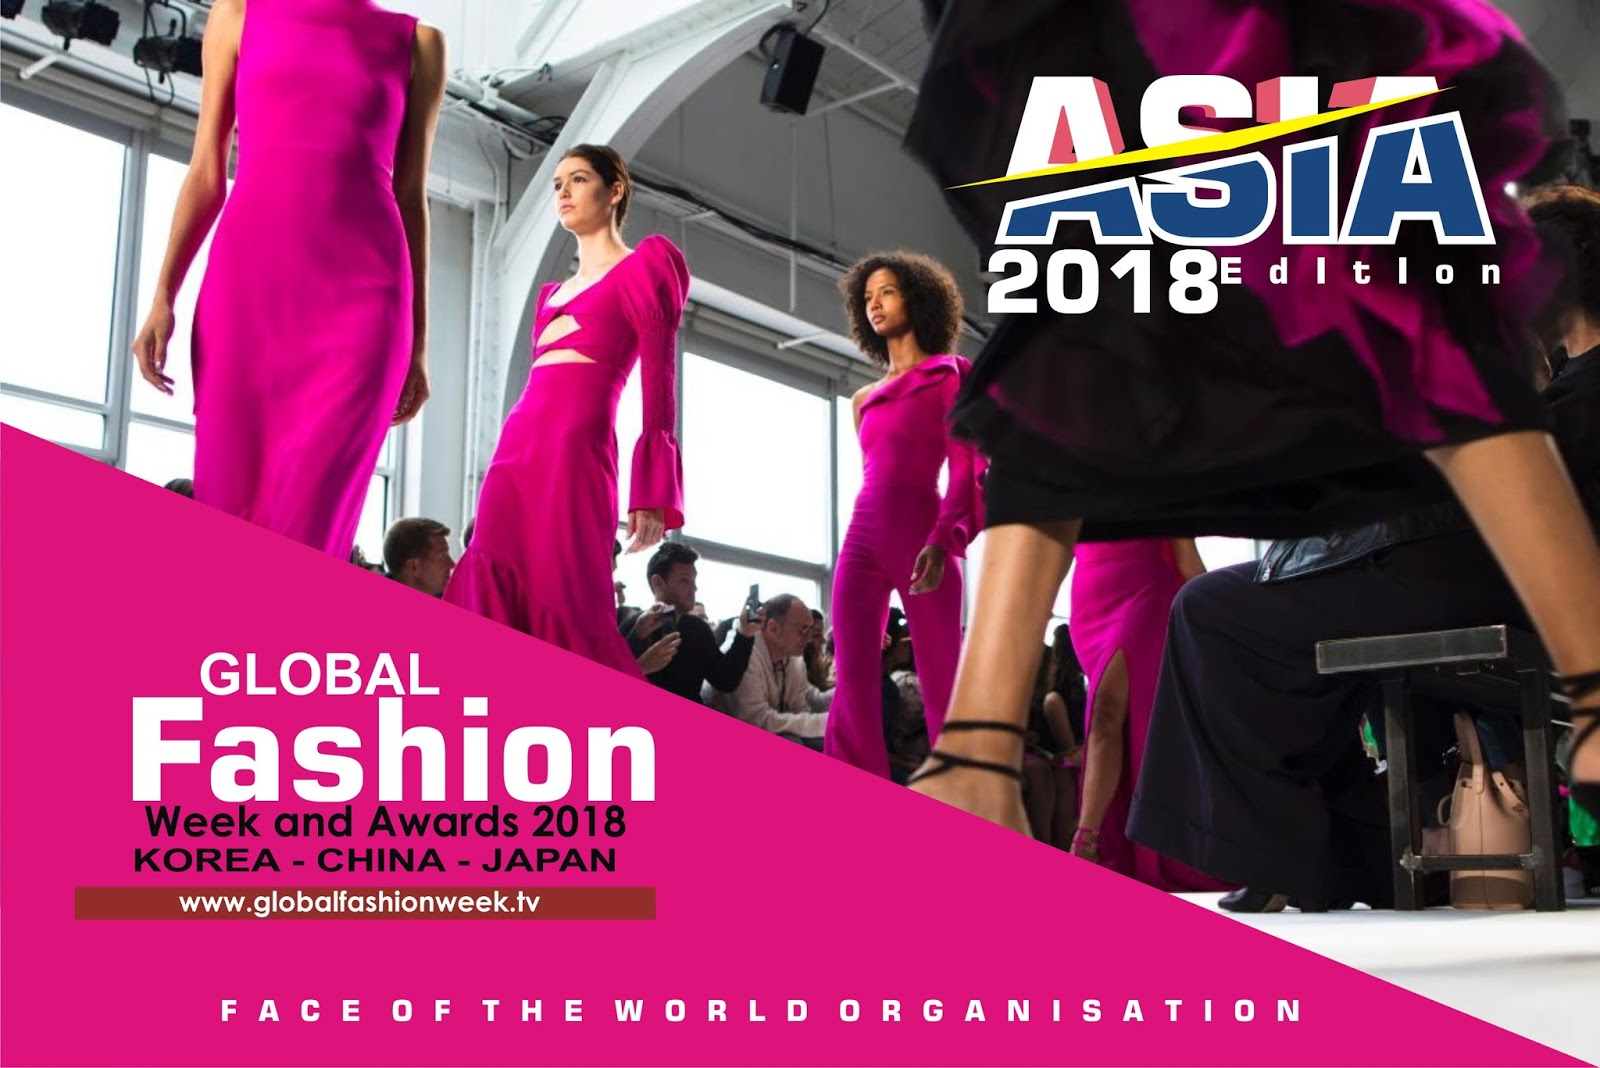 fashion globalization Globalization of fashion trend wednesday, april 30, 2014 without these fashion designers, our fashion today would not have been the same as today.